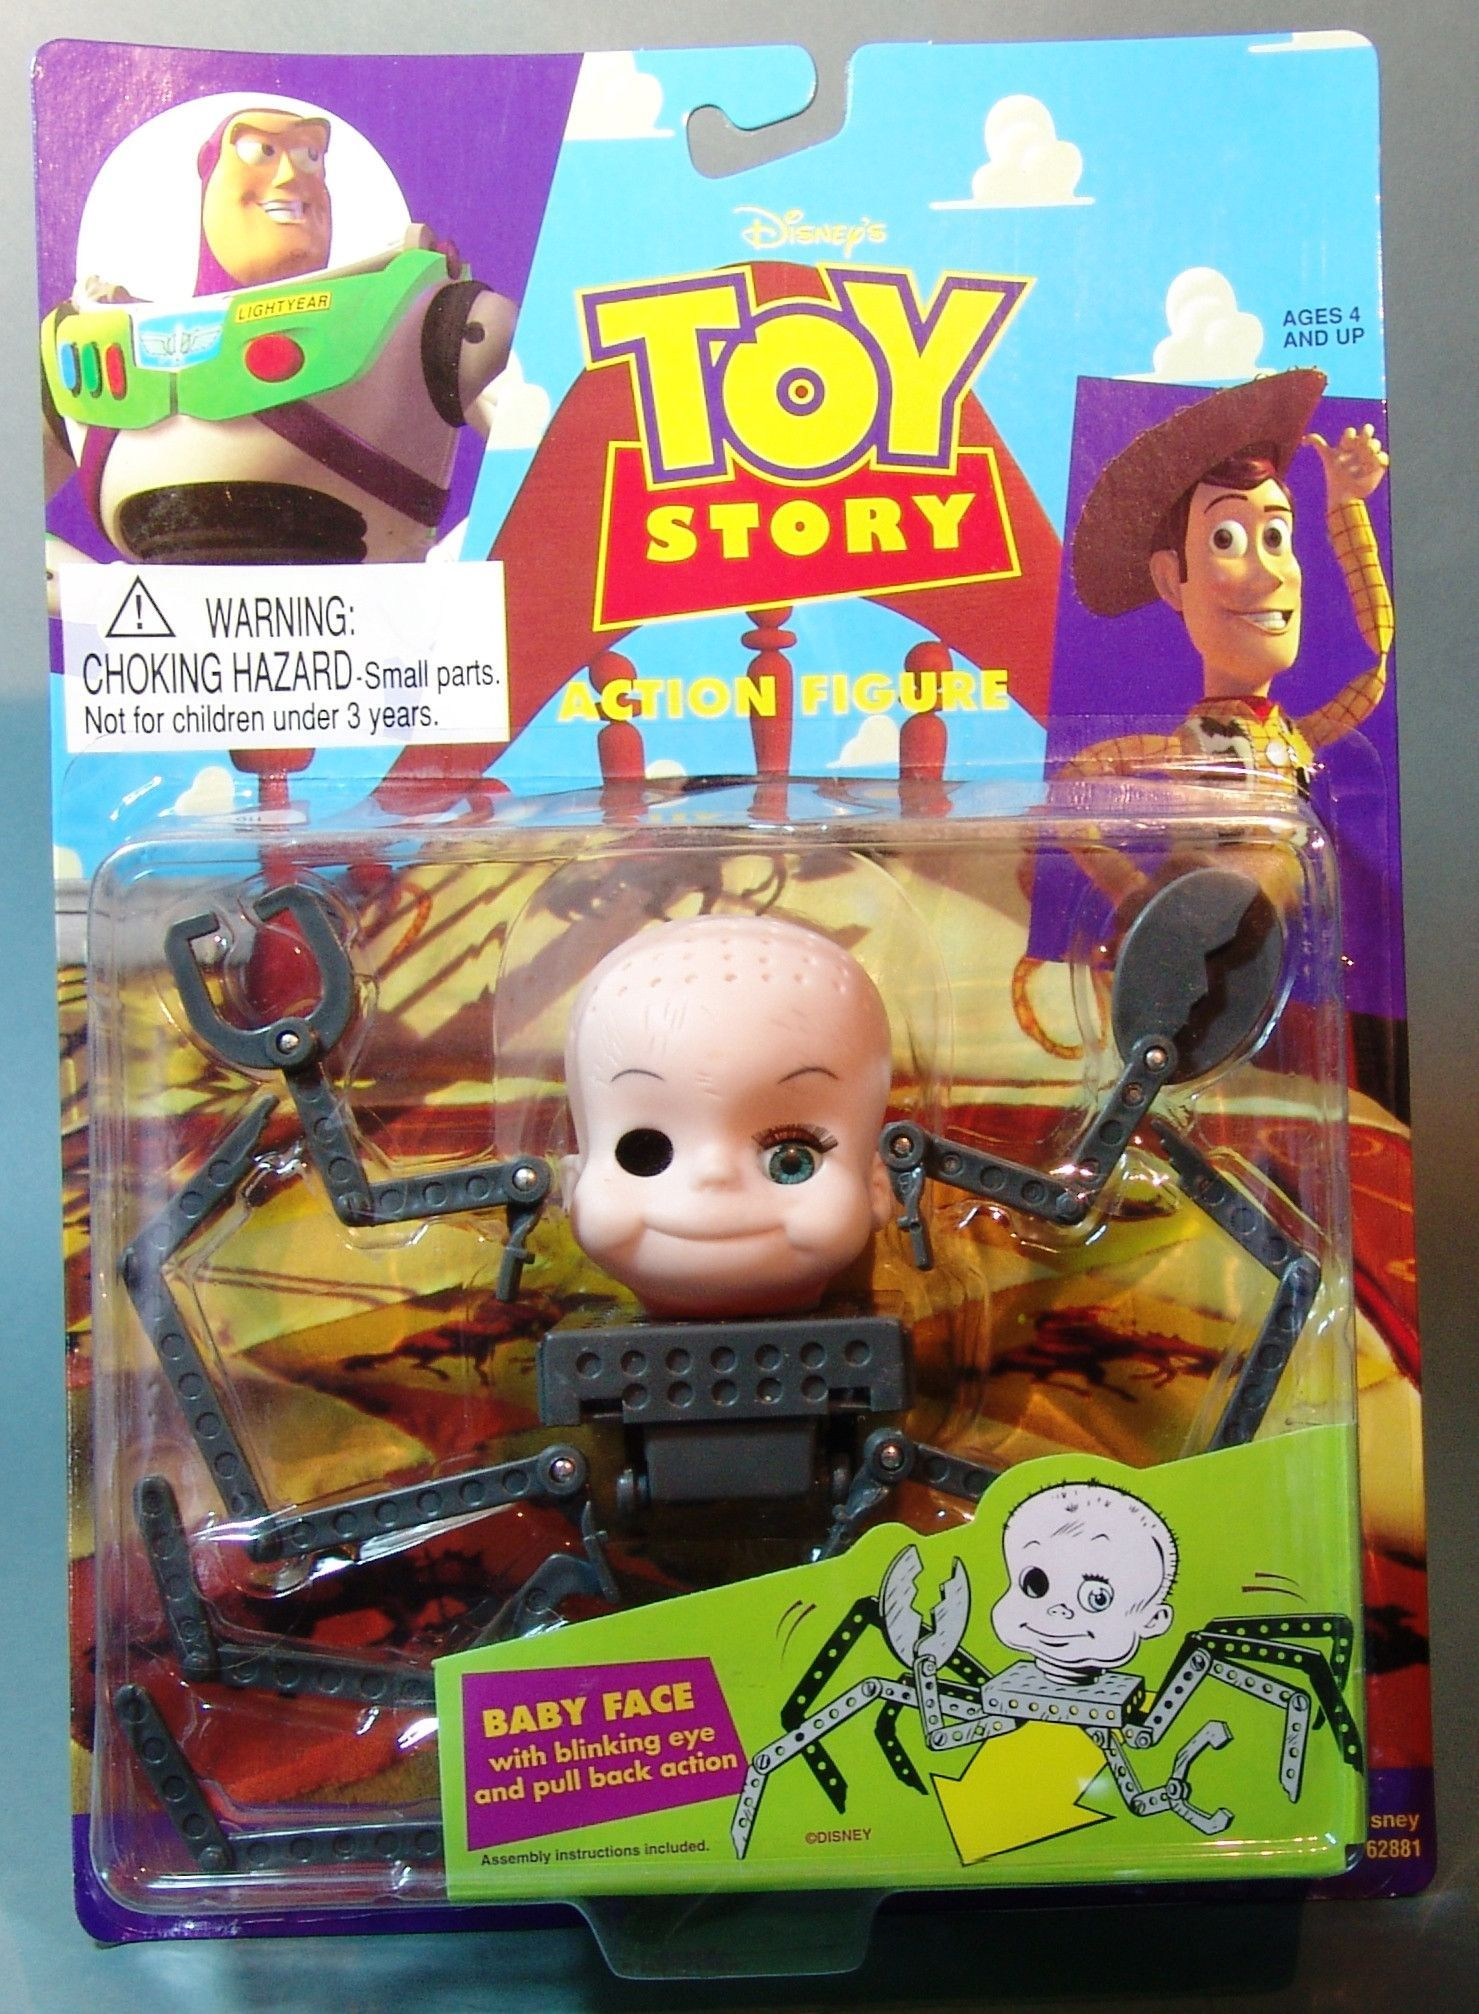 1995 toy story baby face action figure toy story baby